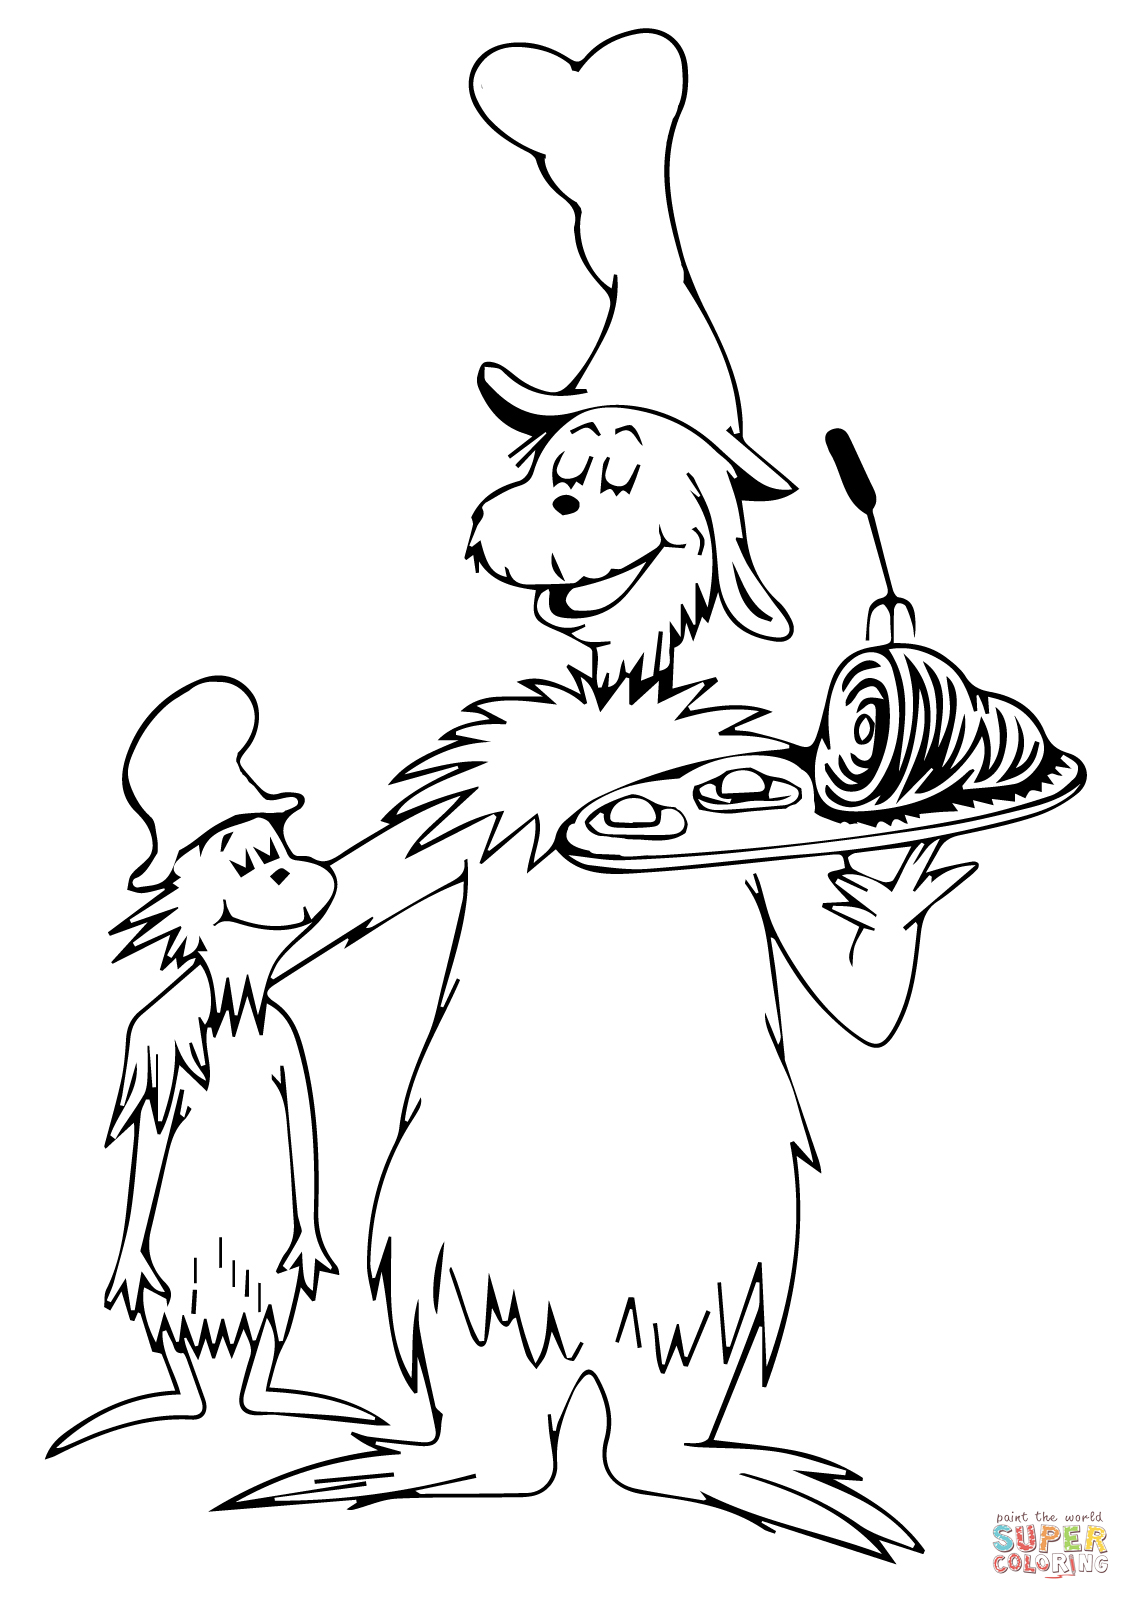 Adult Beauty Free Dr Seuss Coloring Pages Printable Gallery Images best dr suess coloring pages to download and print for free gallery images